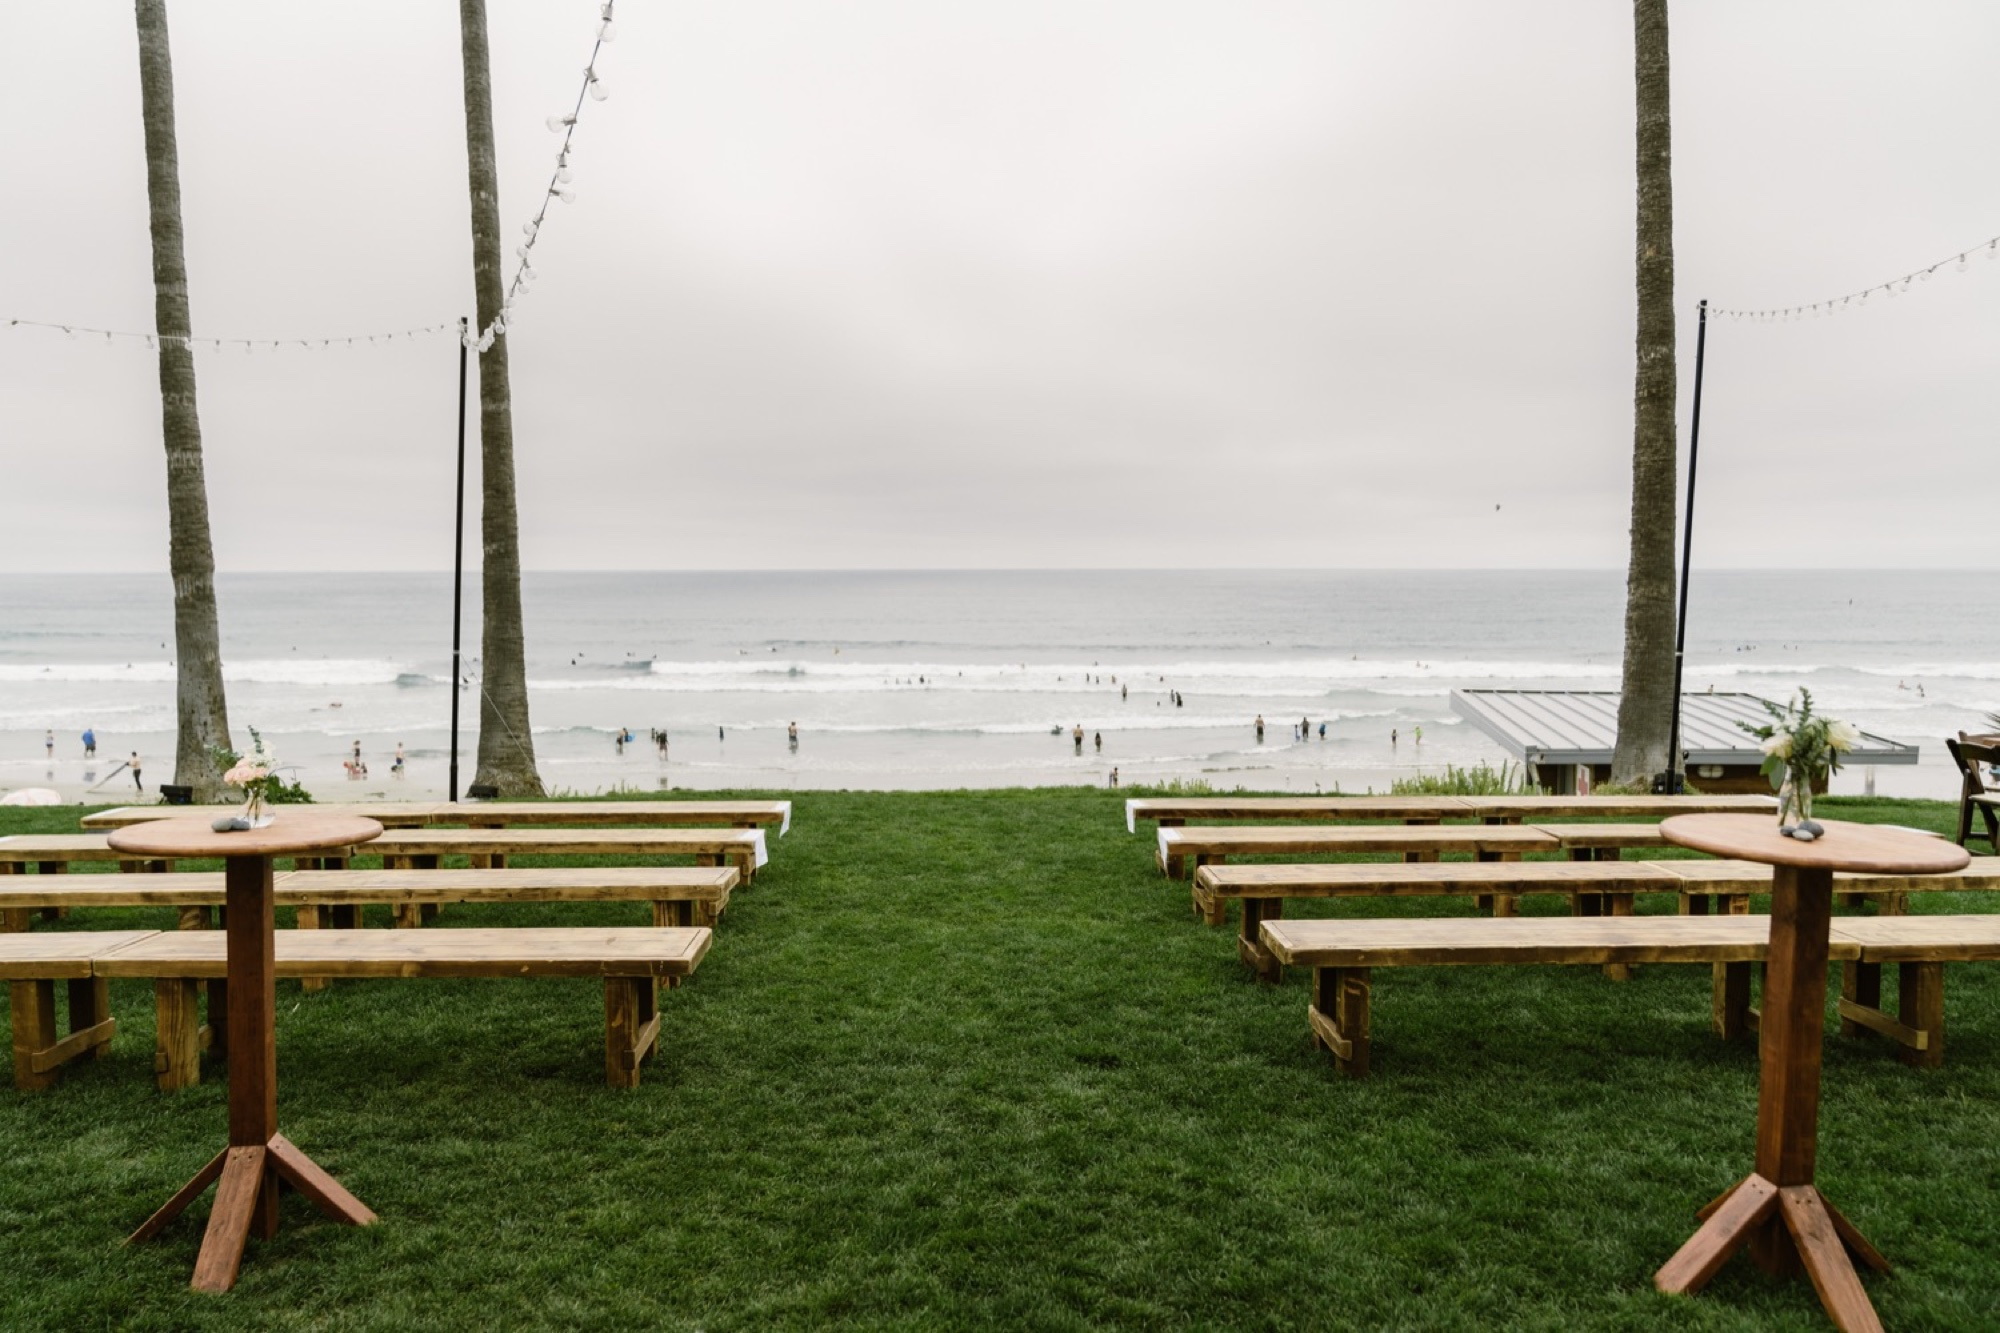 034_Moira and Nate's Wedding-250_diego_forum_california_scripps_seaside_san.jpg